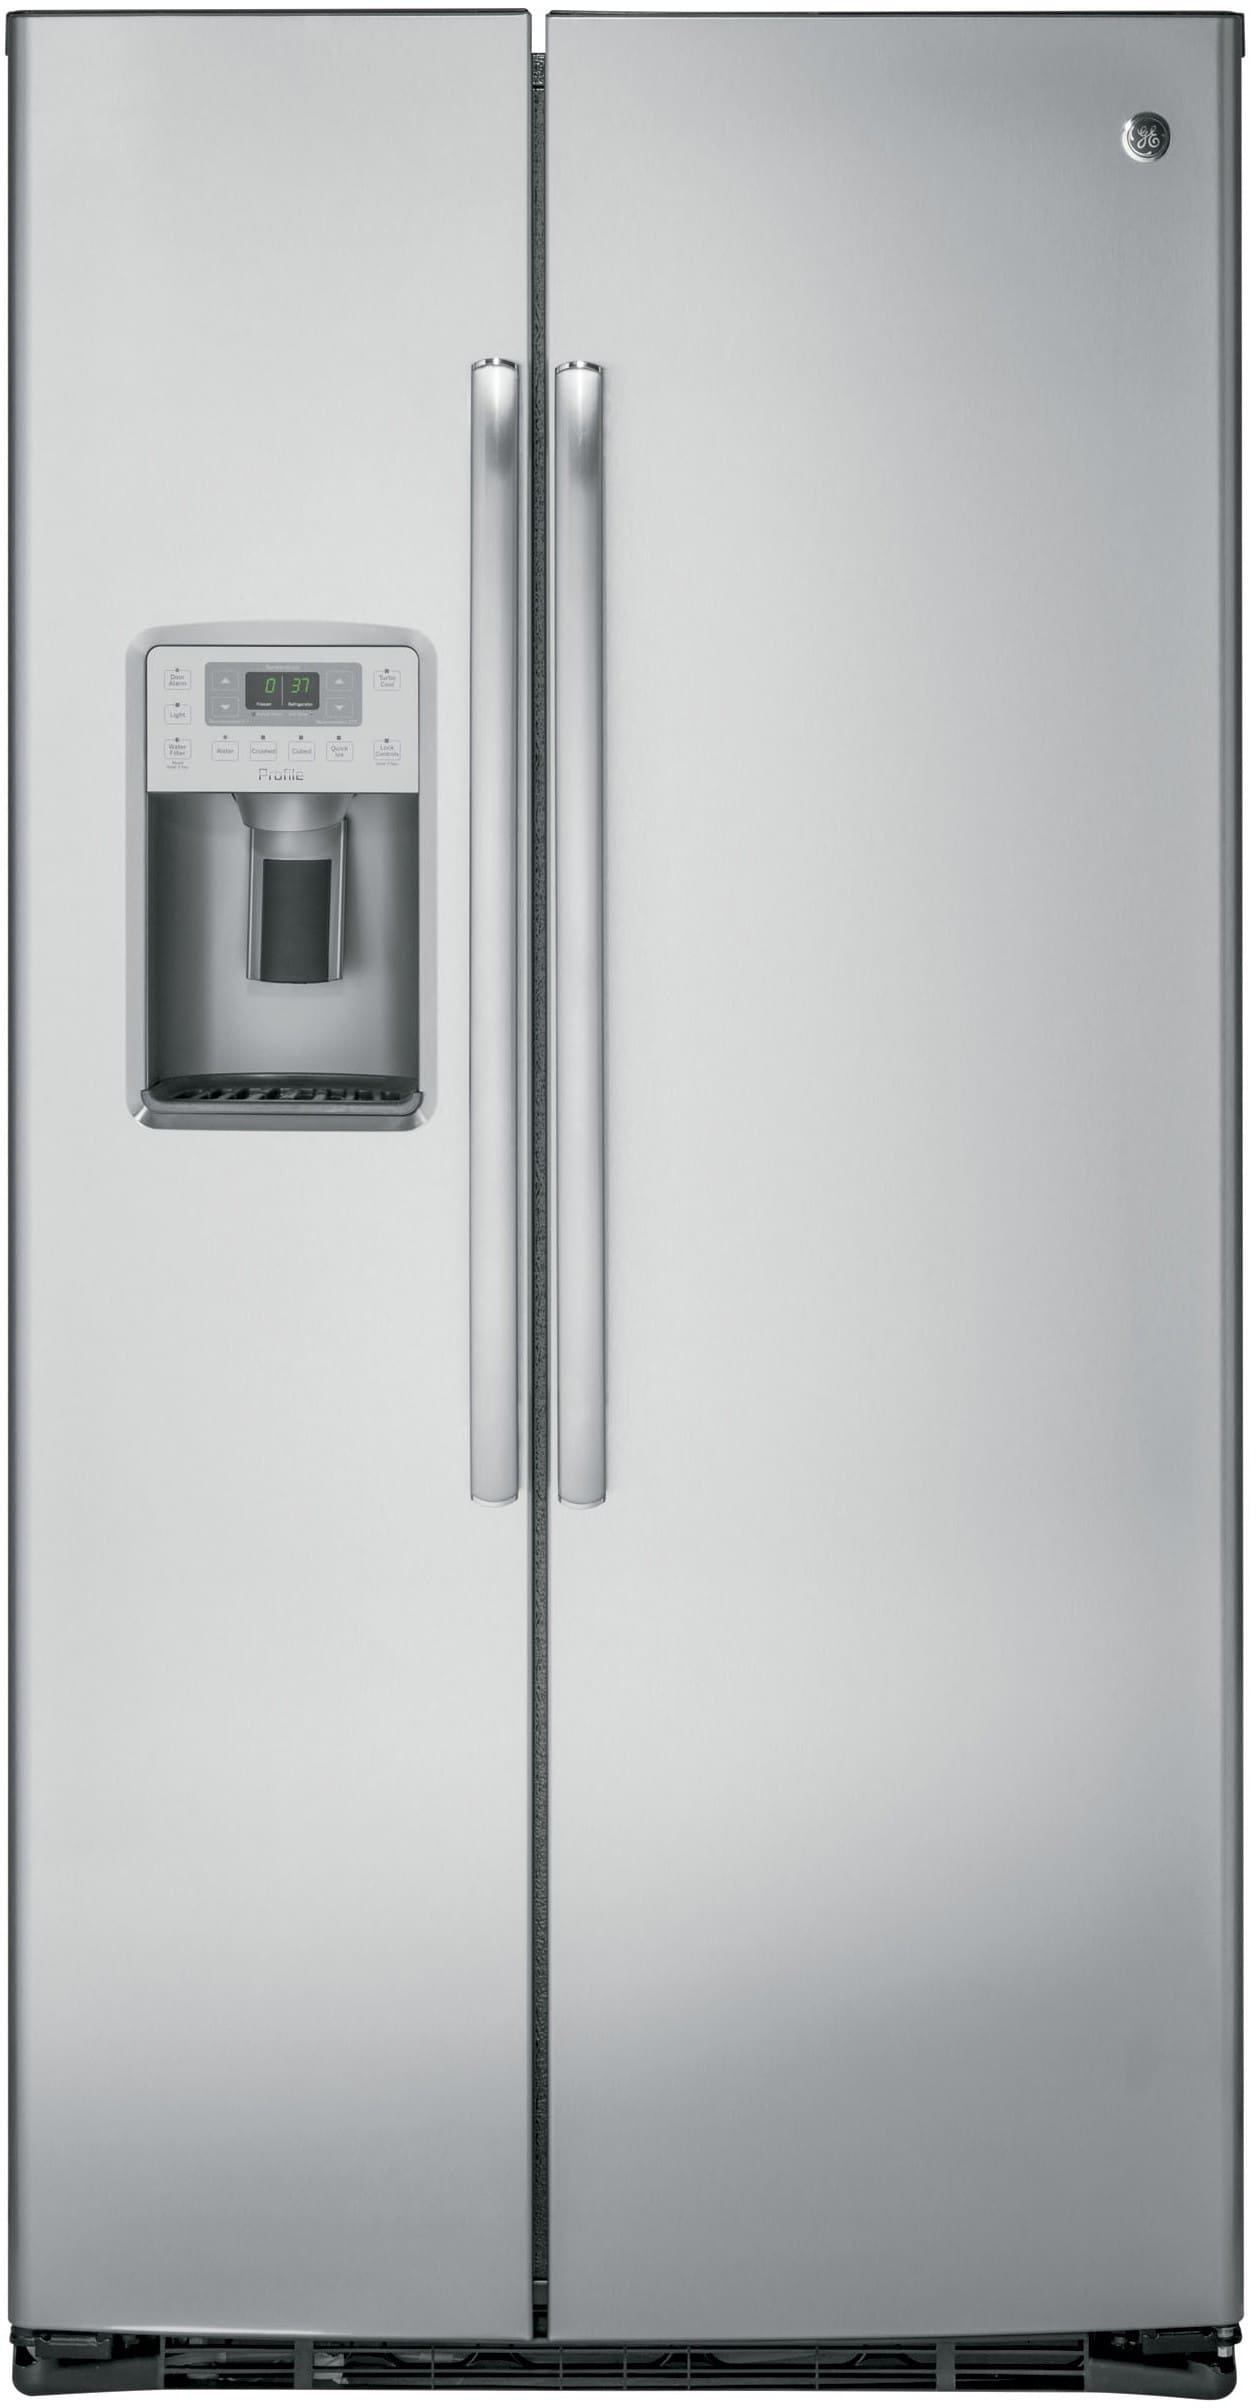 Ge Side By Side Refrigerator Without Ice Maker Zef Jam